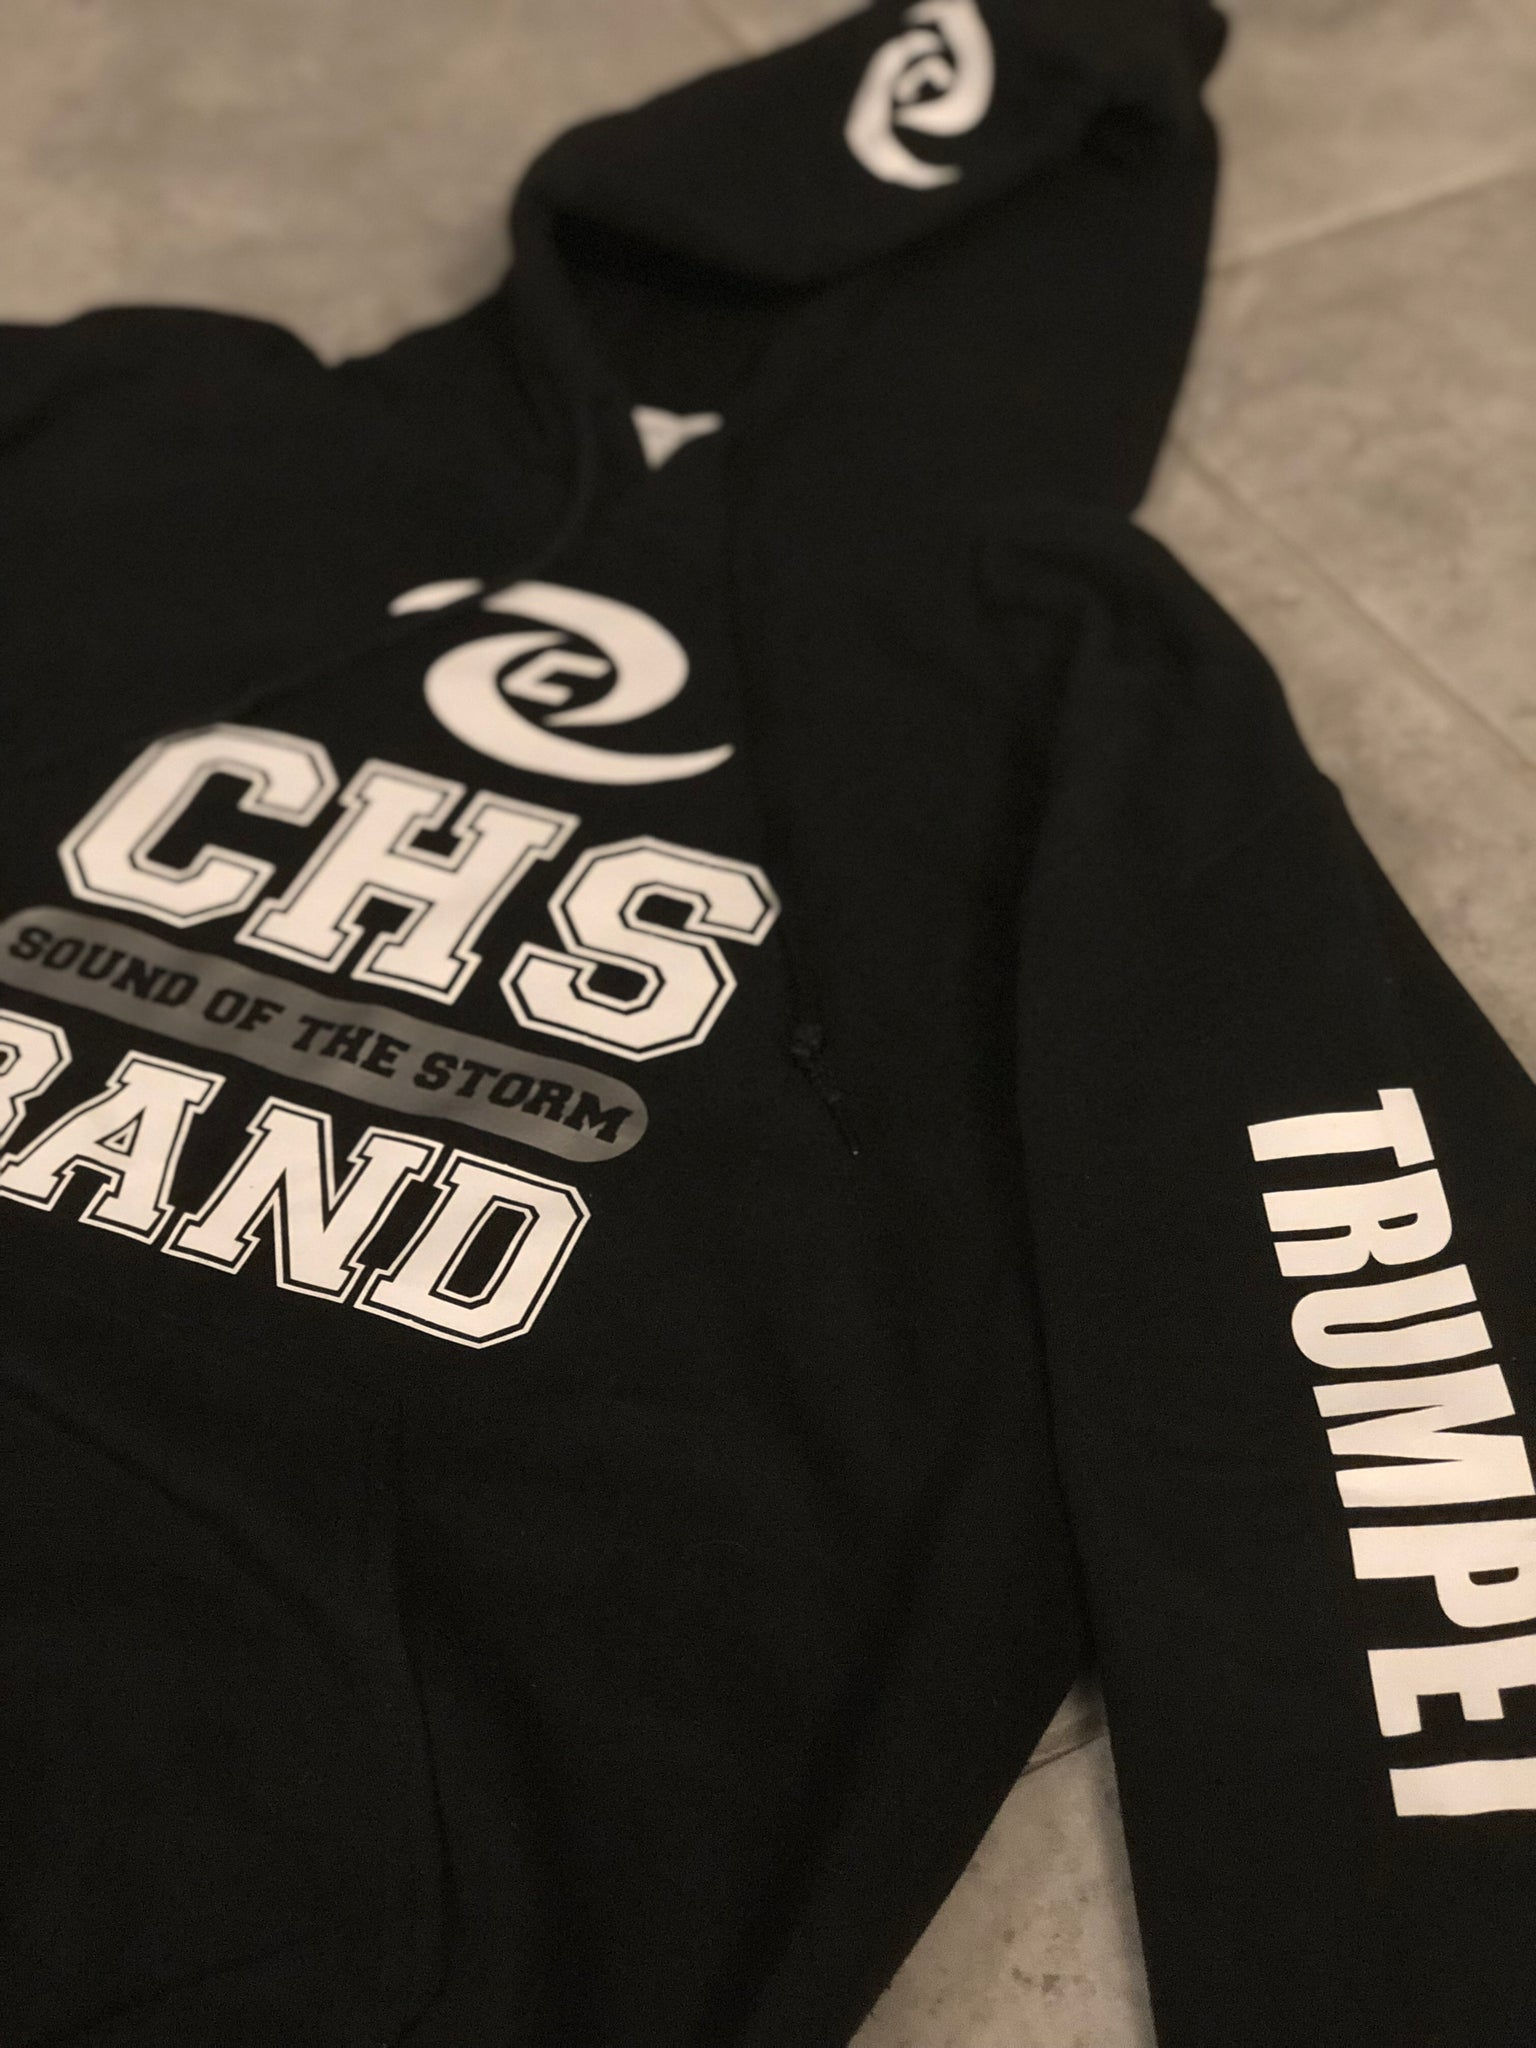 Personalized Black CHS Sound of the Storm Band Hoodie